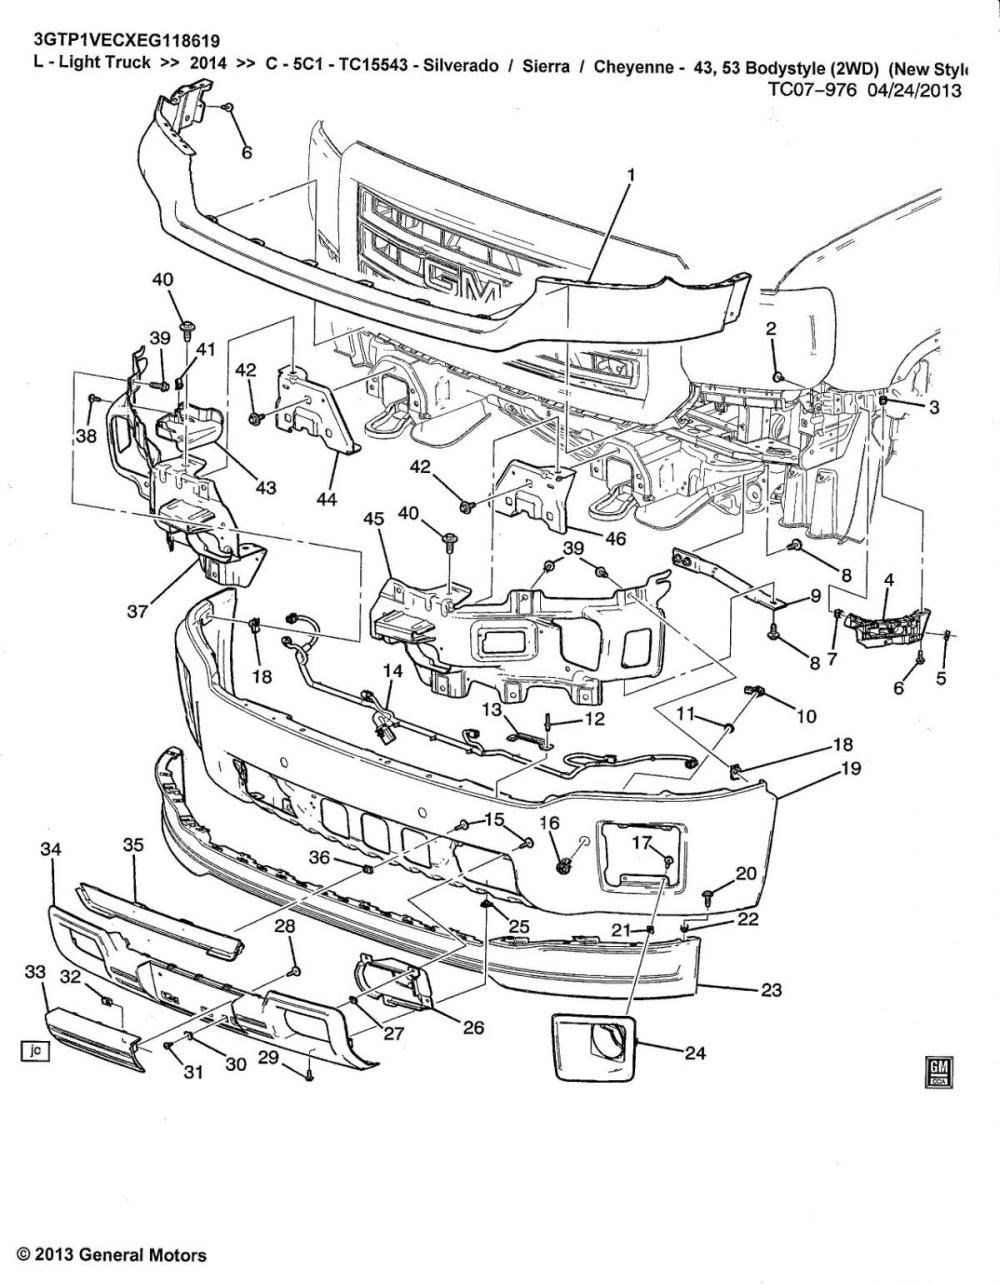 medium resolution of 2005 chevy silverado 1500 2wd 4 3l v6 diagram auto parts diagrams 2005 chevy silverado 1500 part diagram 2005 chevy silverado 1500 parts diagram